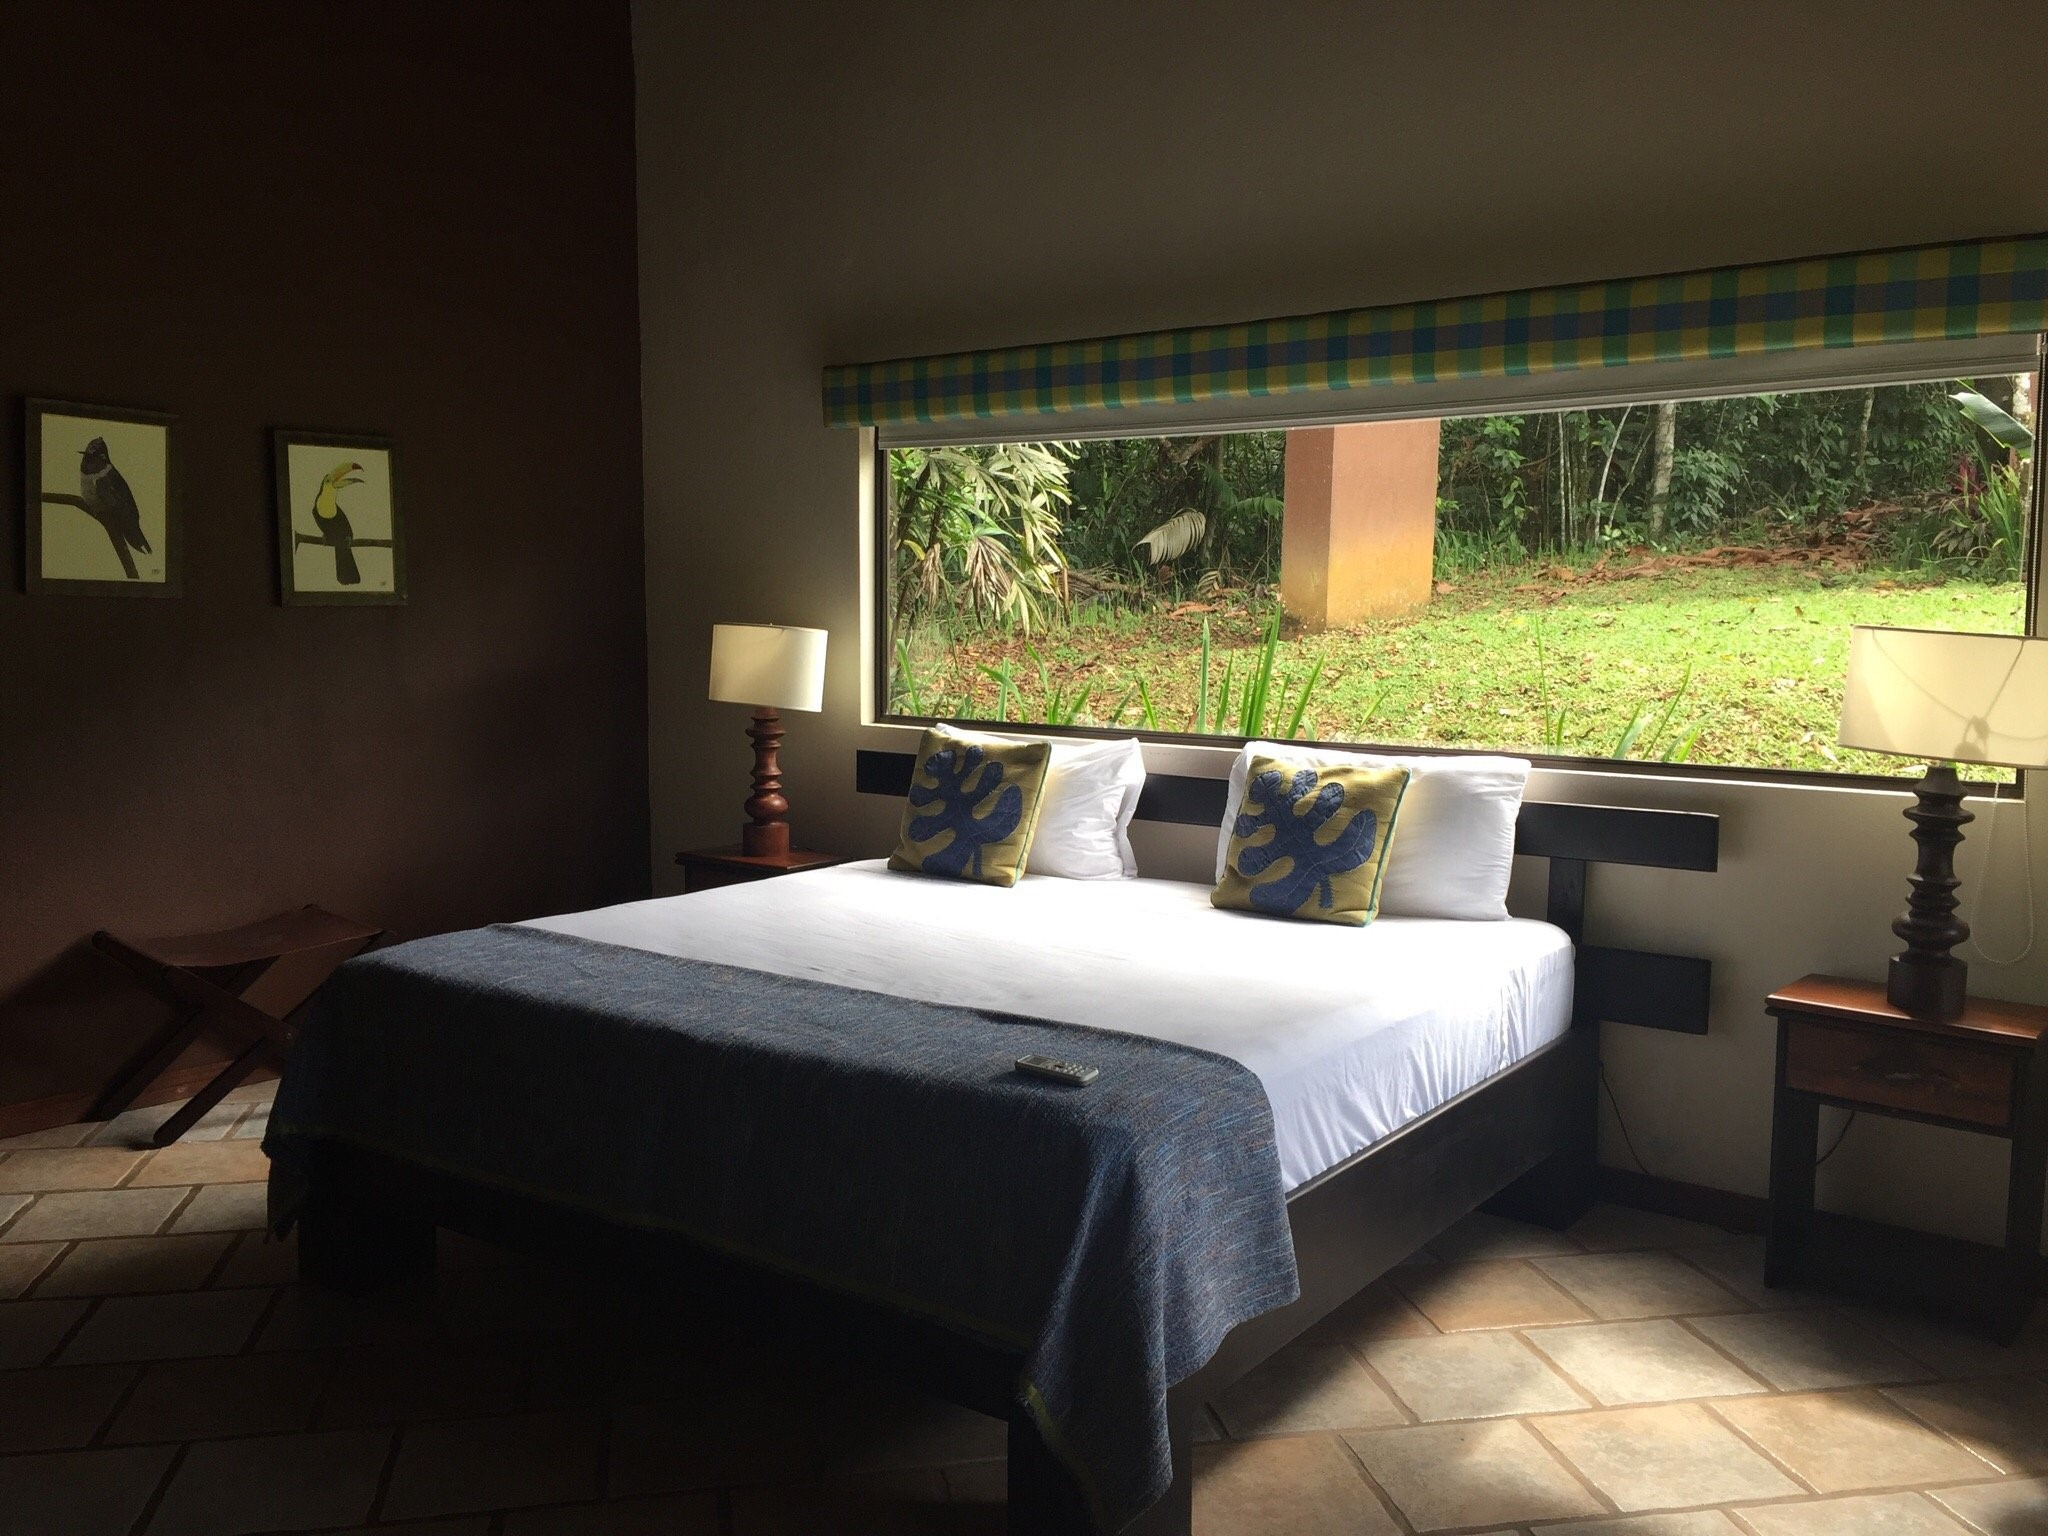 Overnight canyoning in Costa Rica staying at Chachagua Rainforest Lodge.